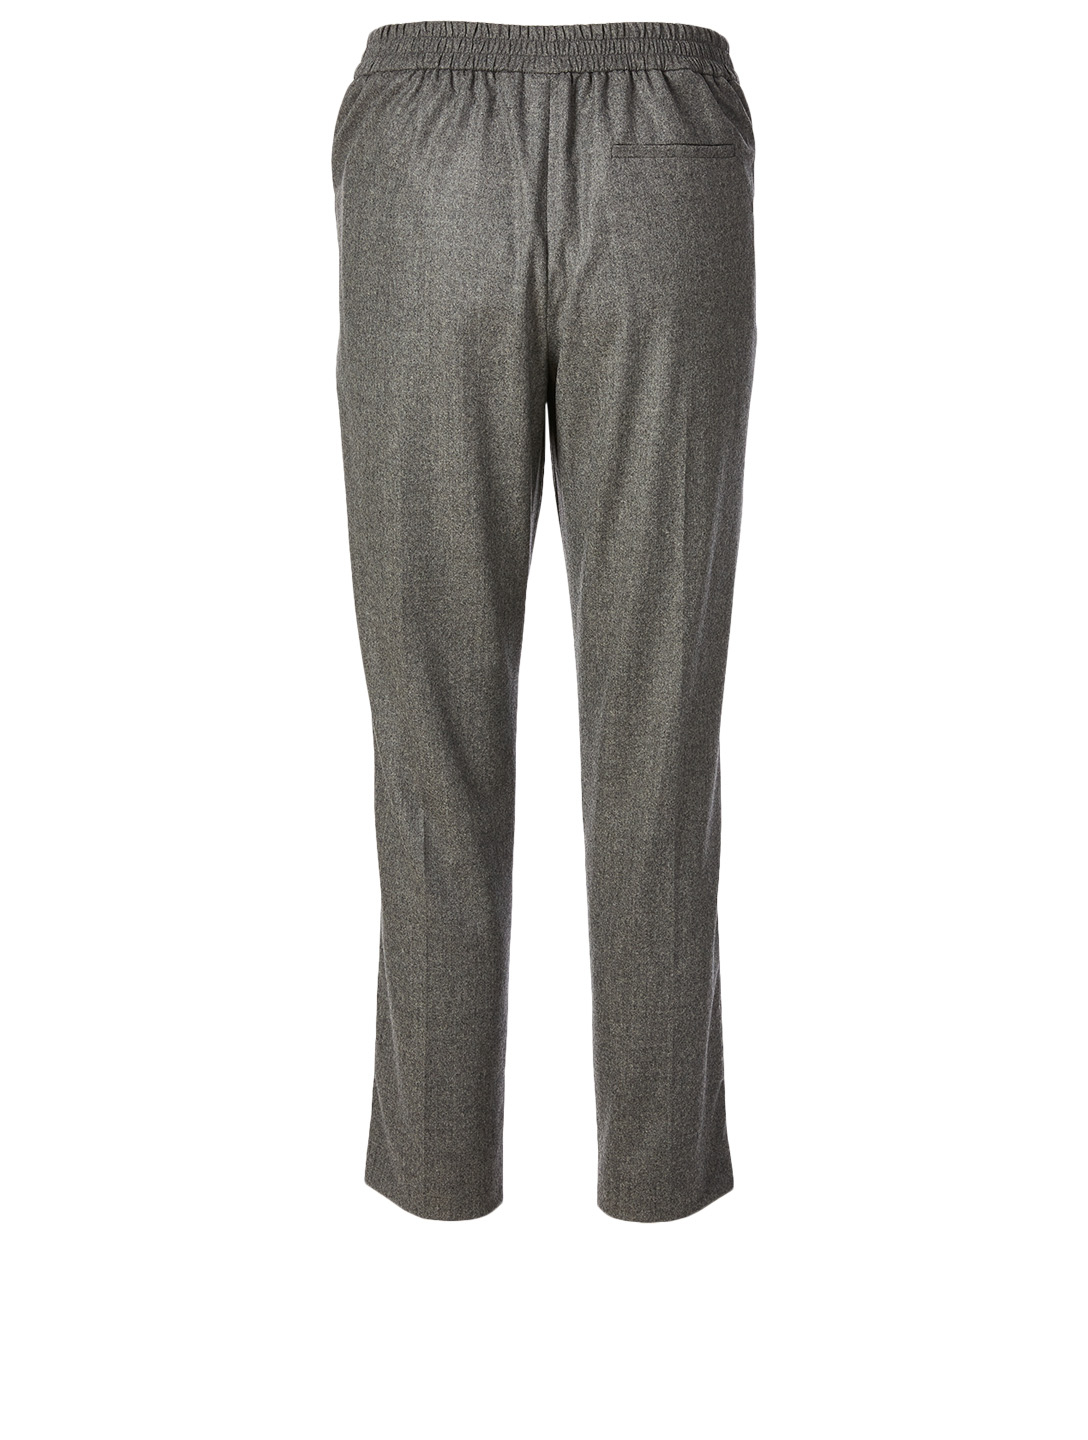 STELLA MCCARTNEY Claire Wool Tailored Pants Women's Grey